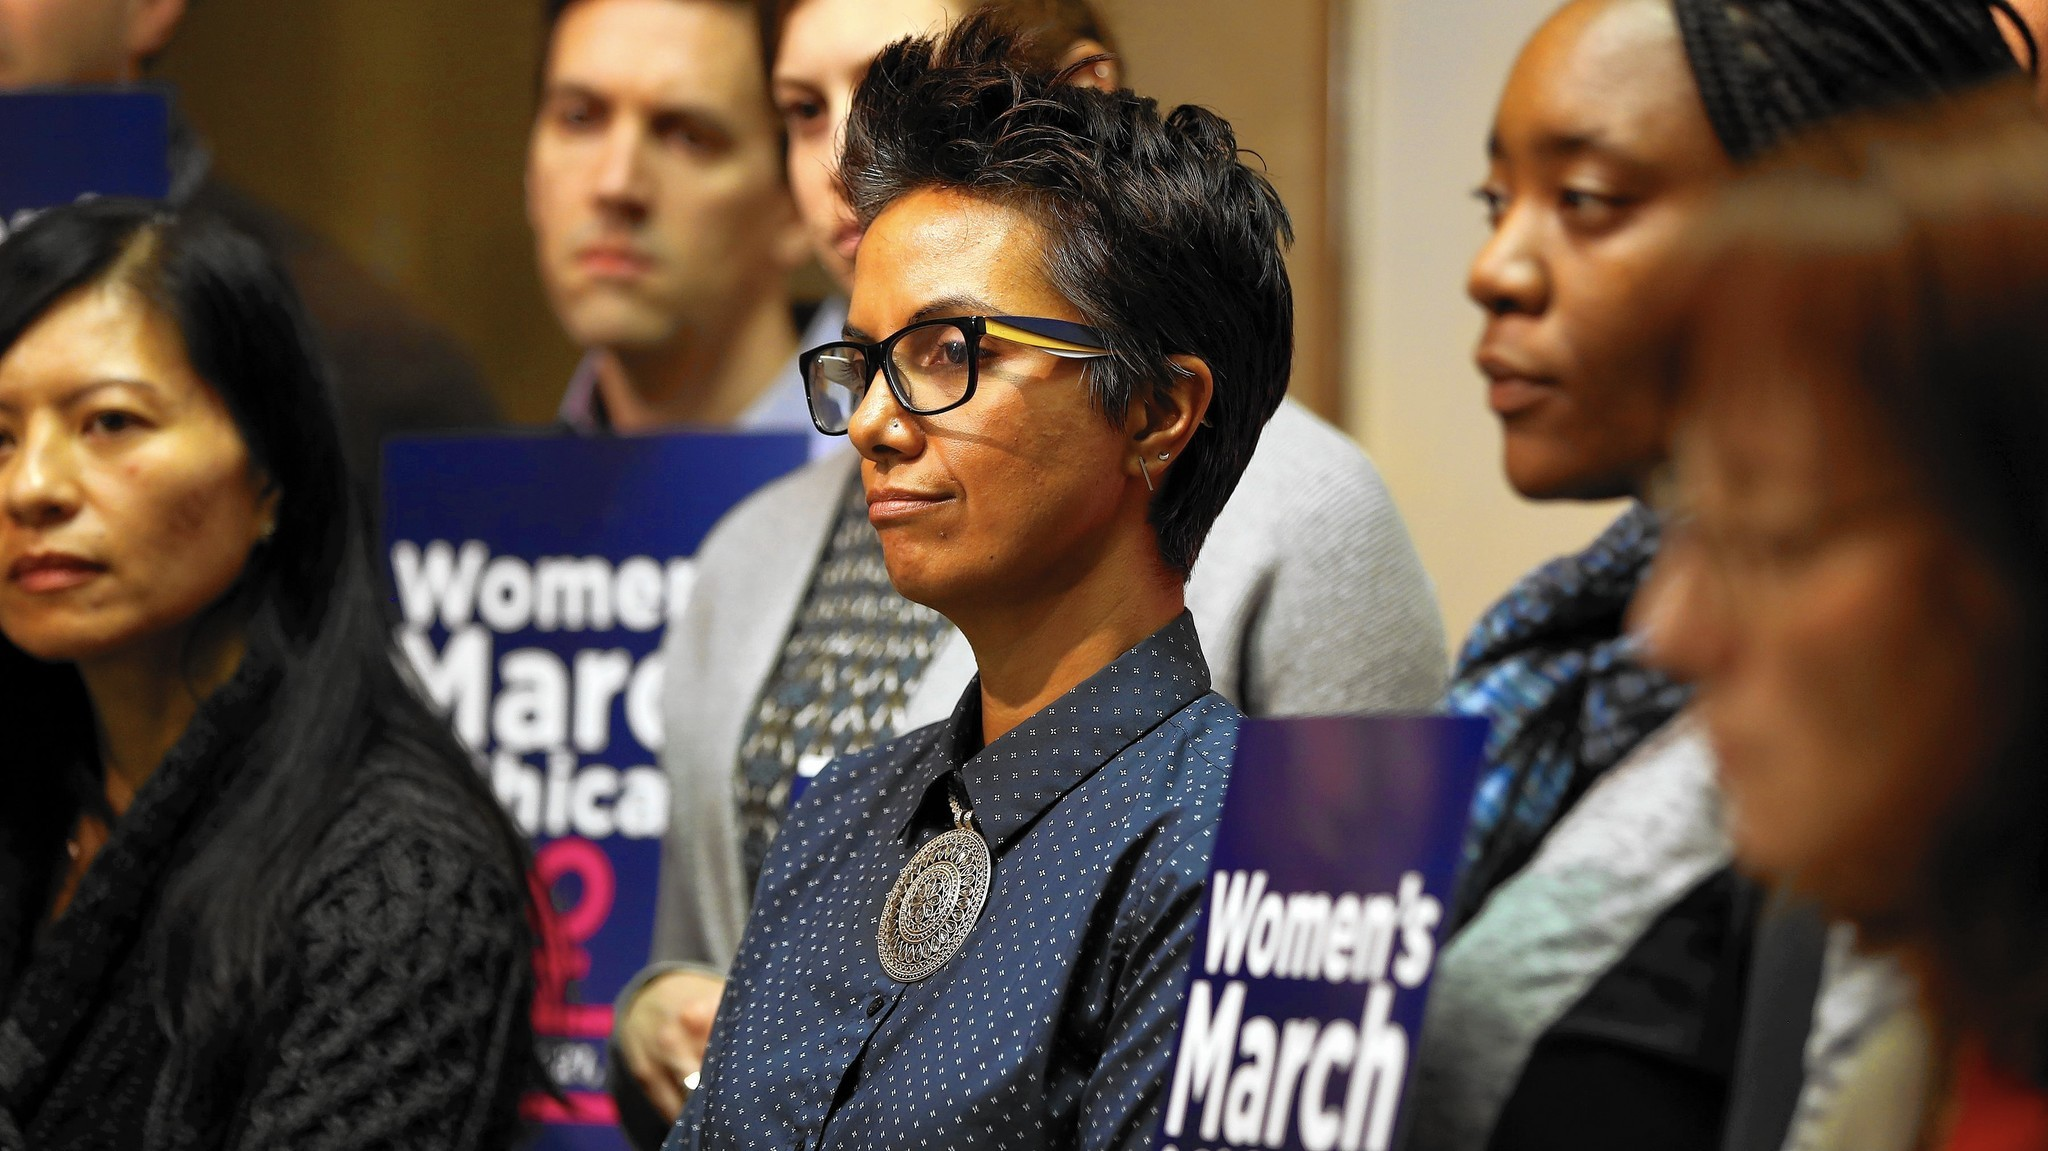 22,000 people expected to march for women's rights in Chicago on Saturday